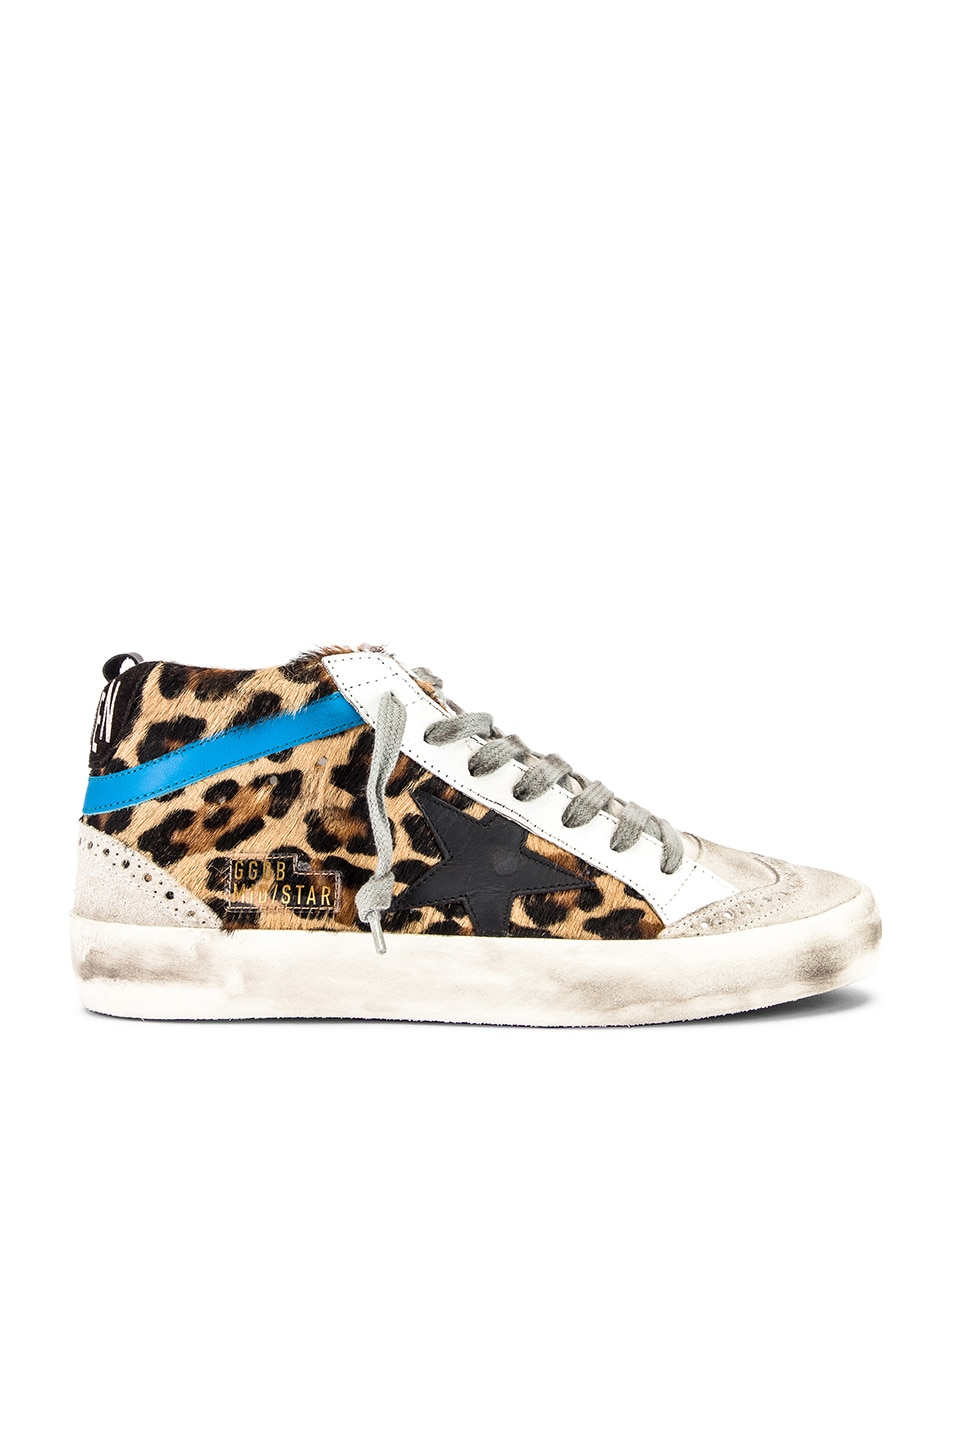 Image 1 of Golden Goose Mid Star Sneaker in Leopard Pony & Black